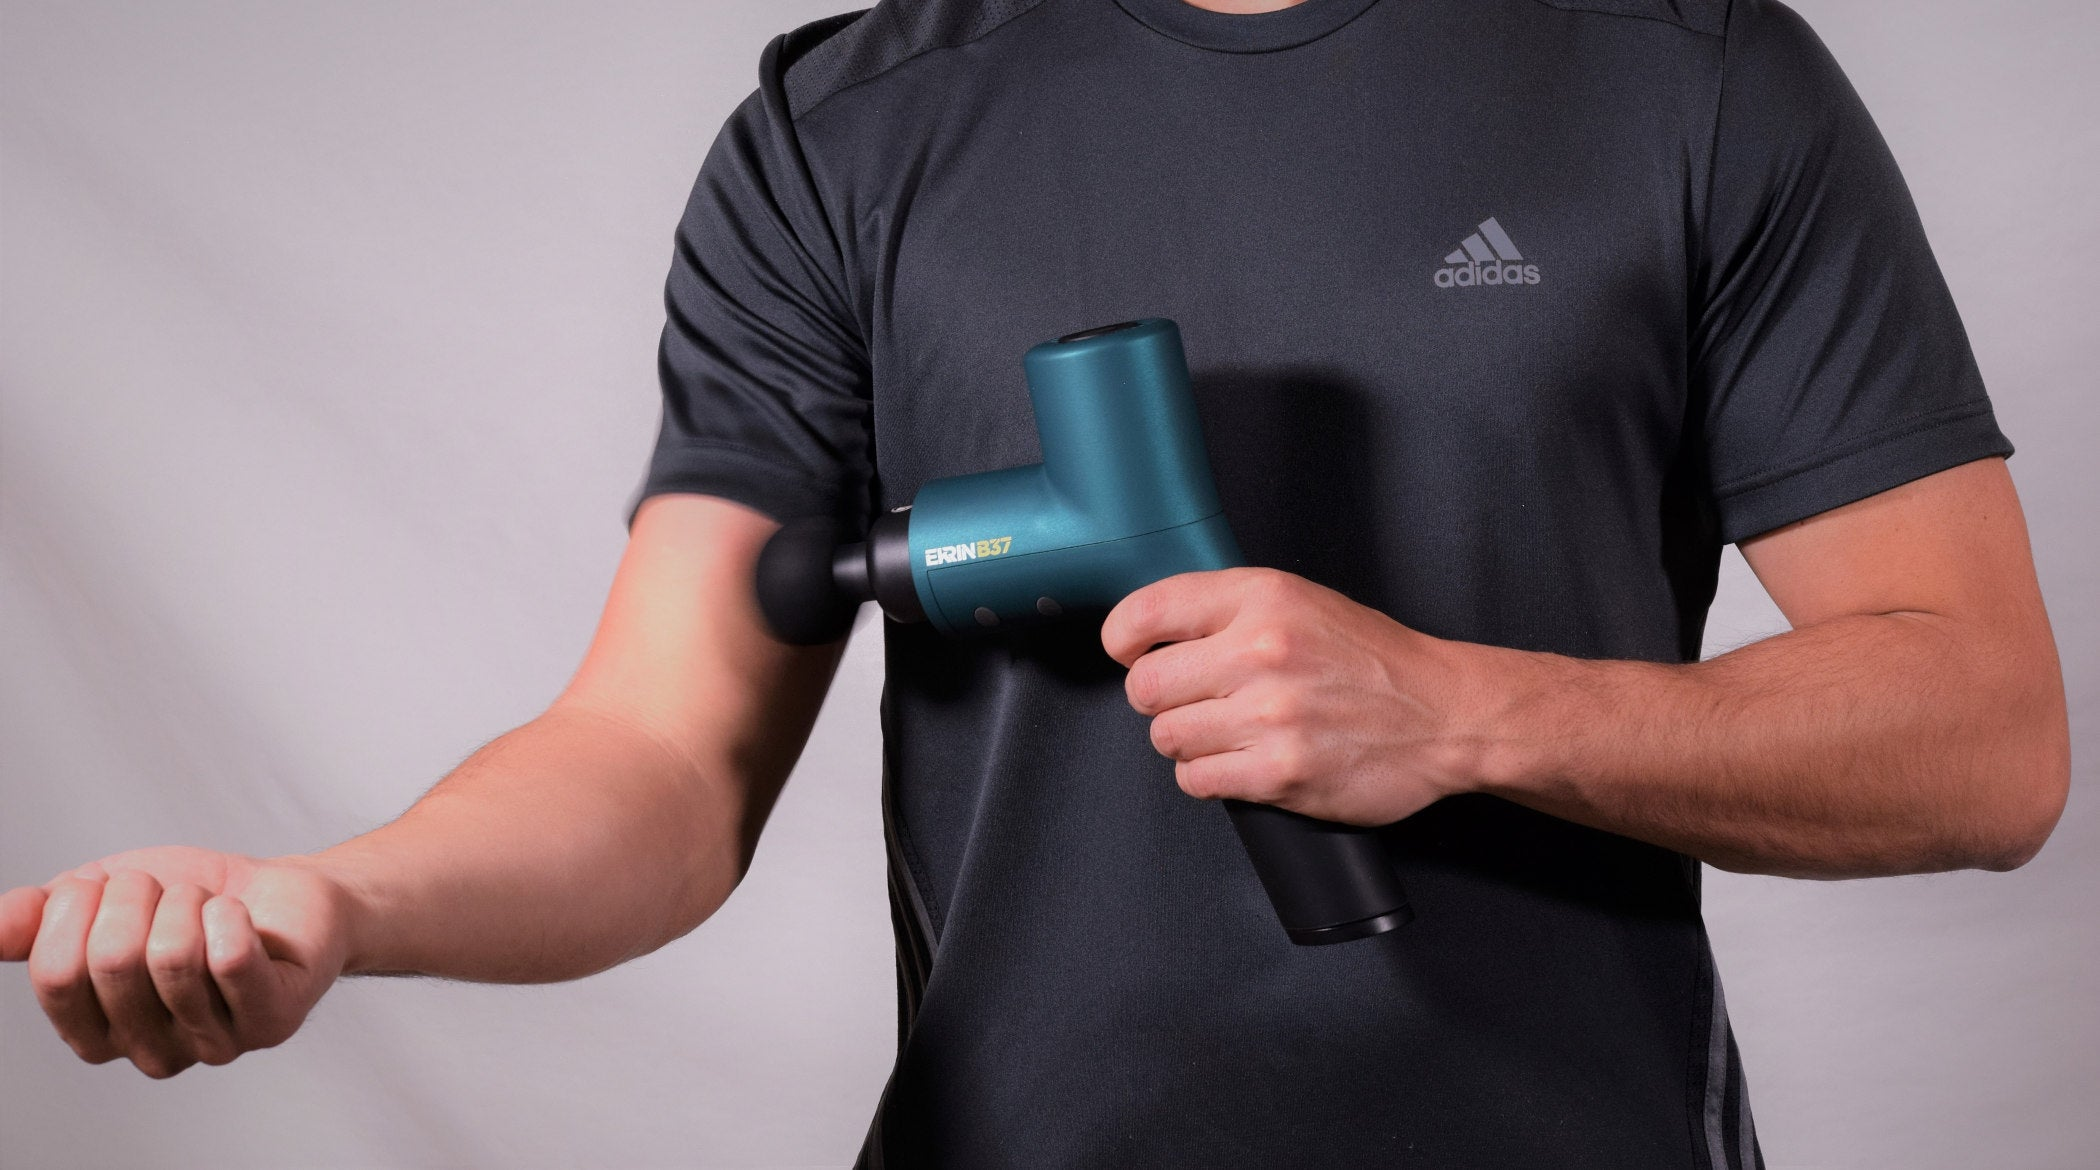 Ekrin B37 massage gun for arm muscle recovery after workout